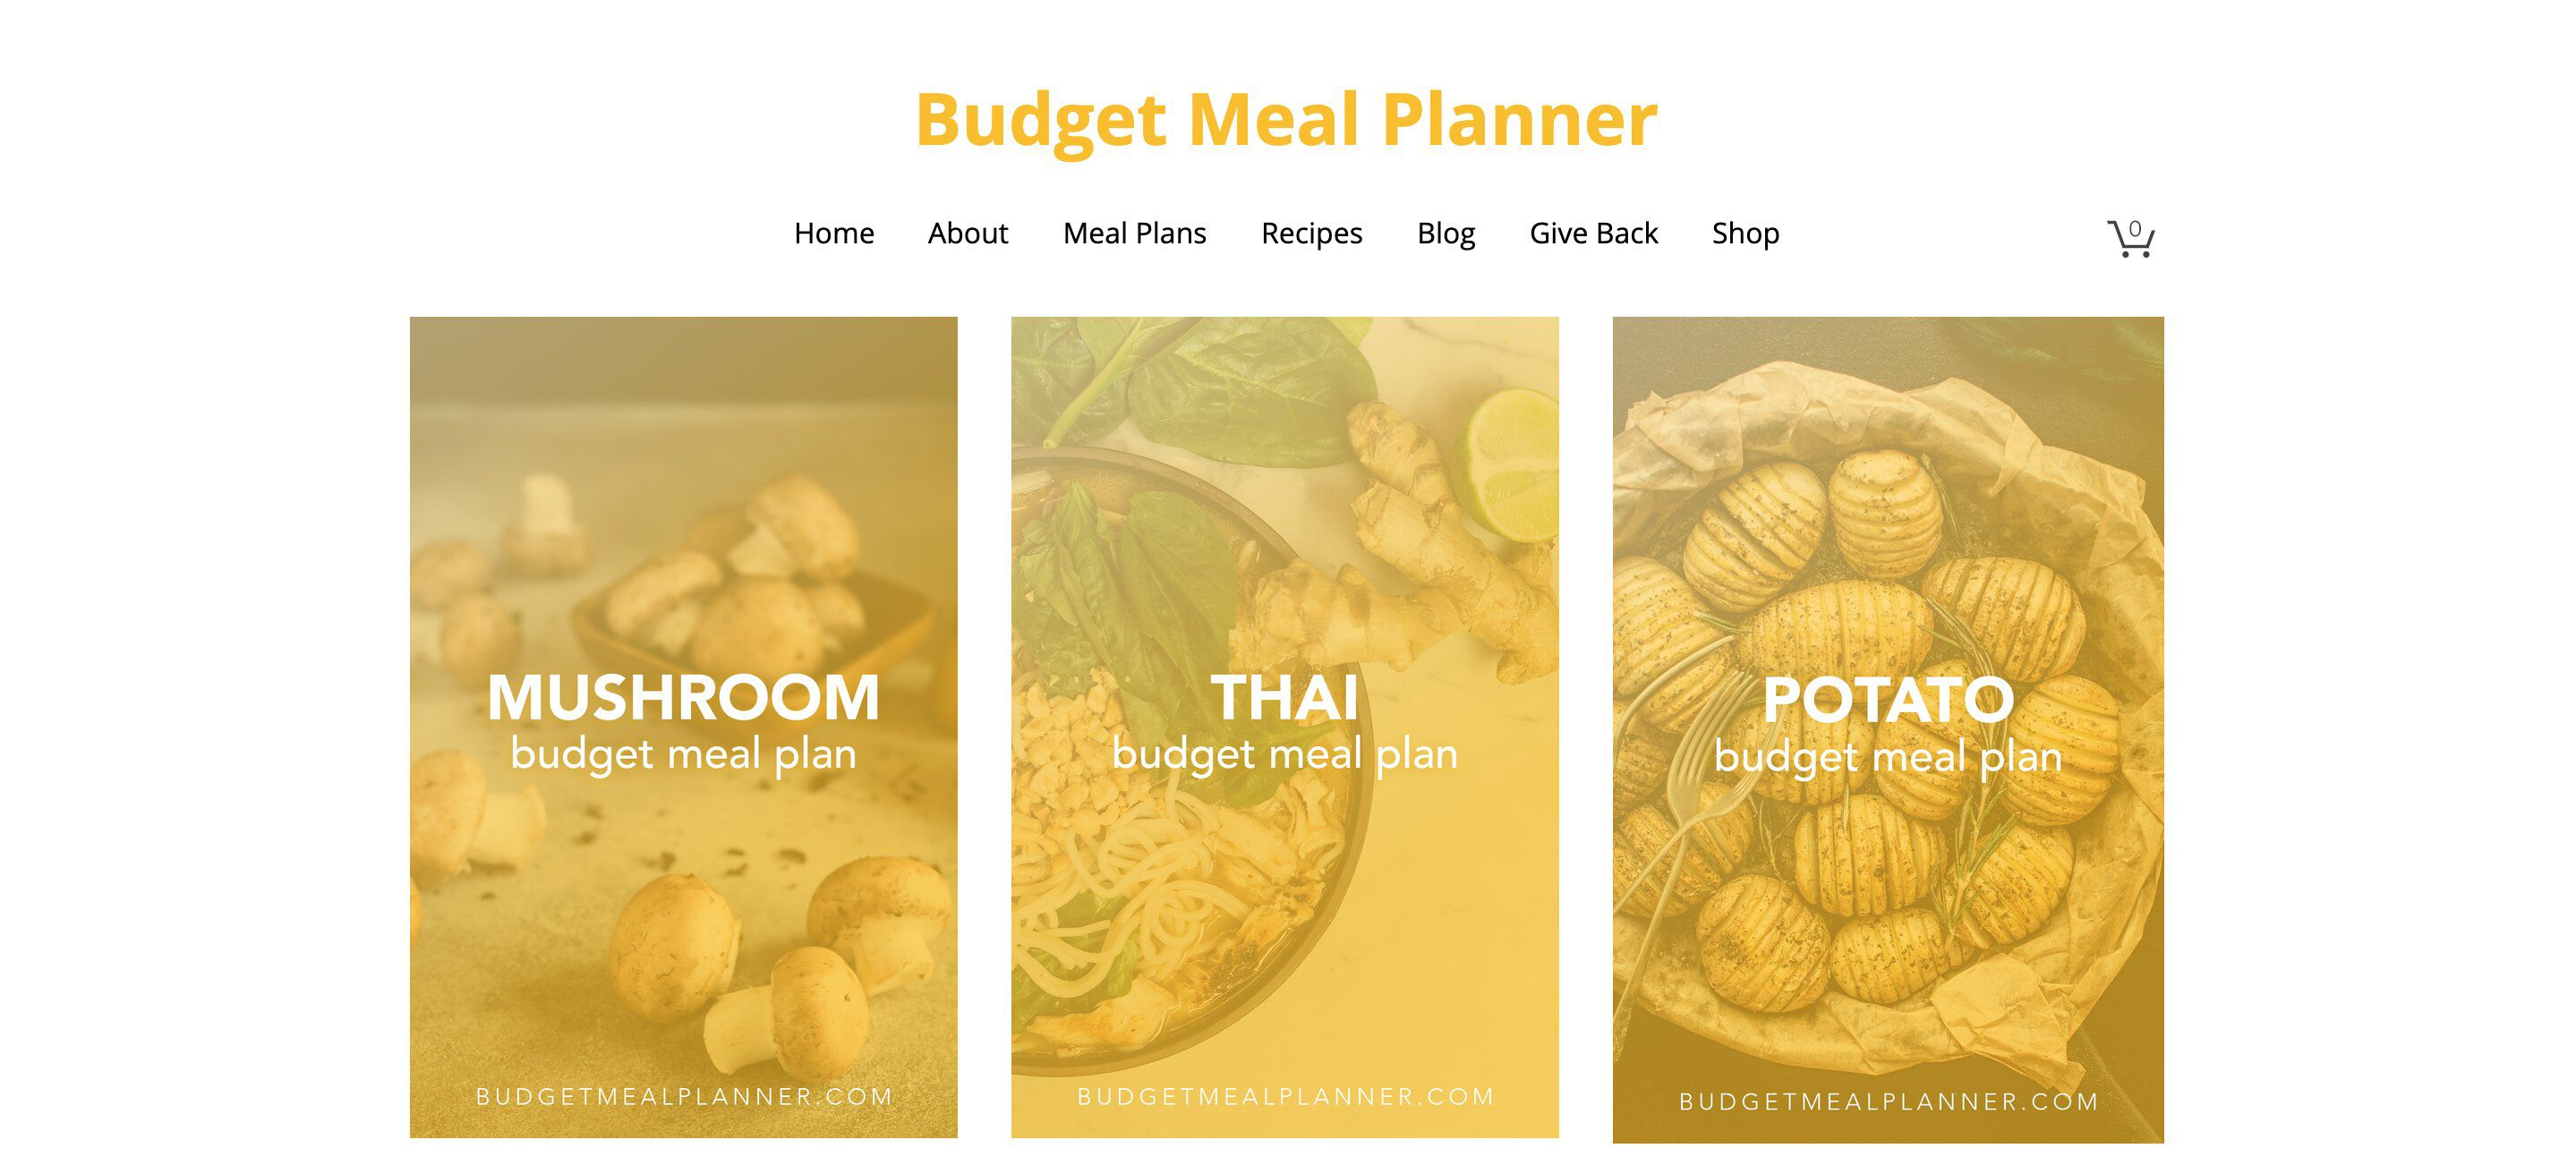 Budget Meal Planner